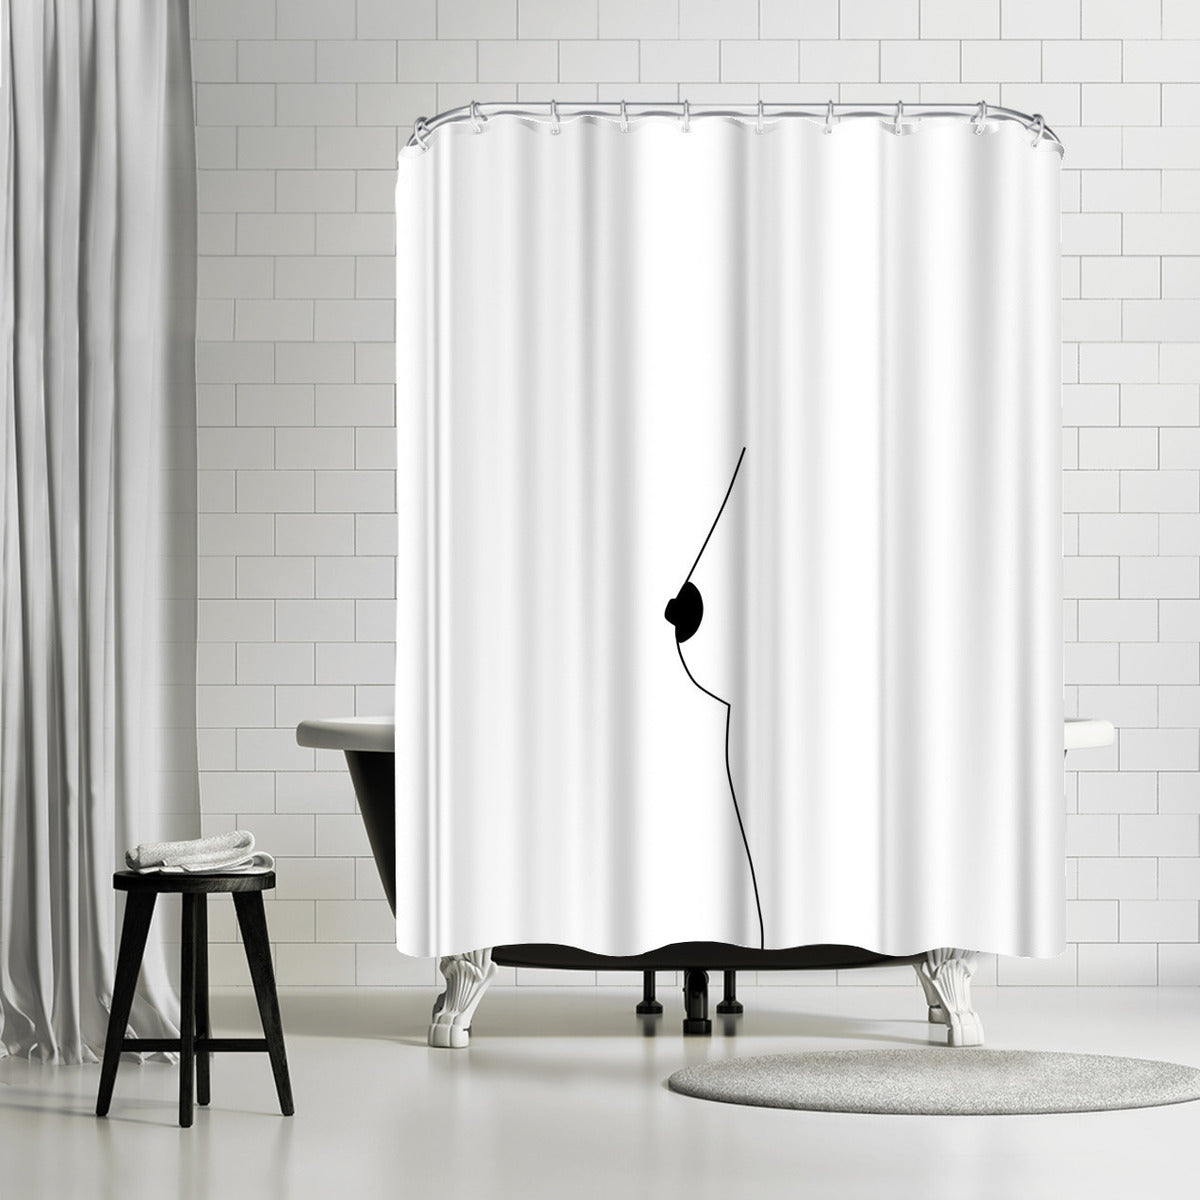 Minimal Intimacy by Explicit Design Shower Curtain -  - Americanflat